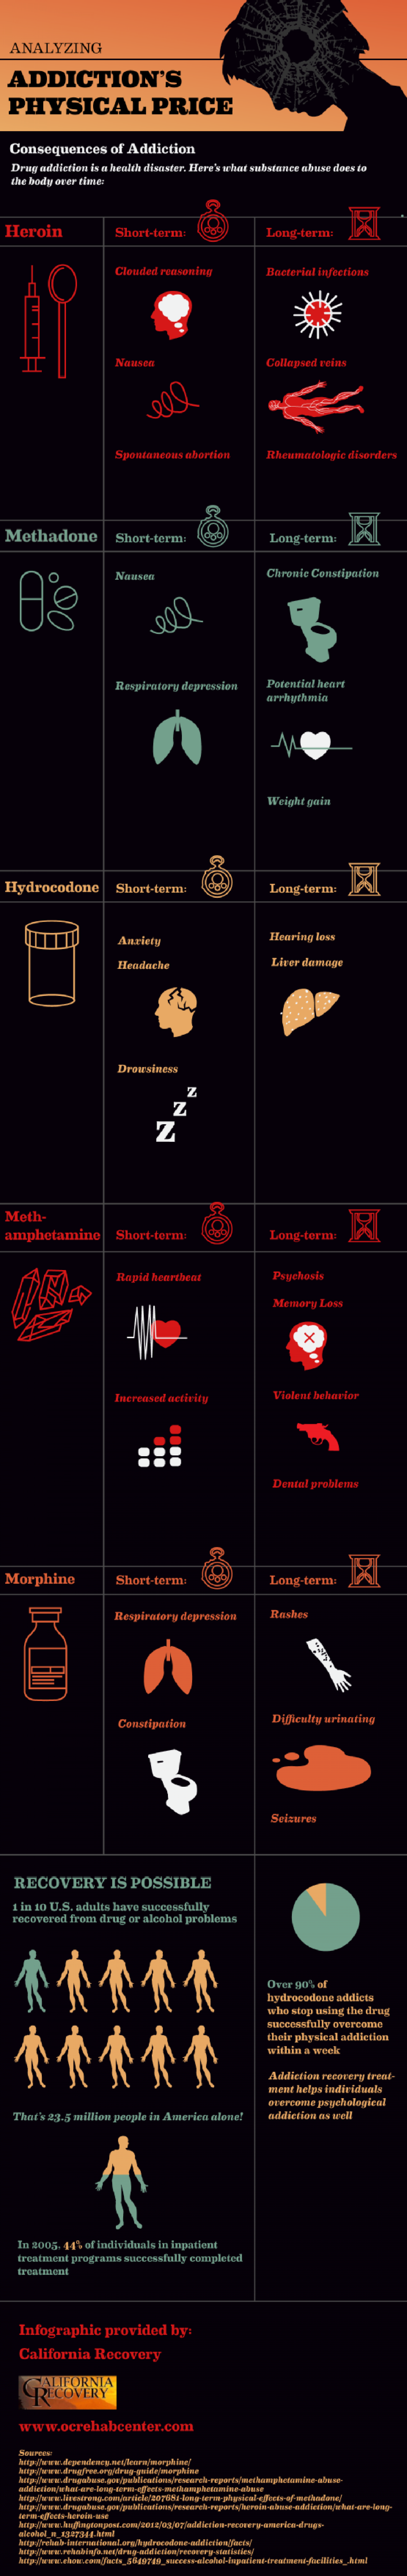 Analyzing Addiction's Physical Price Infographic